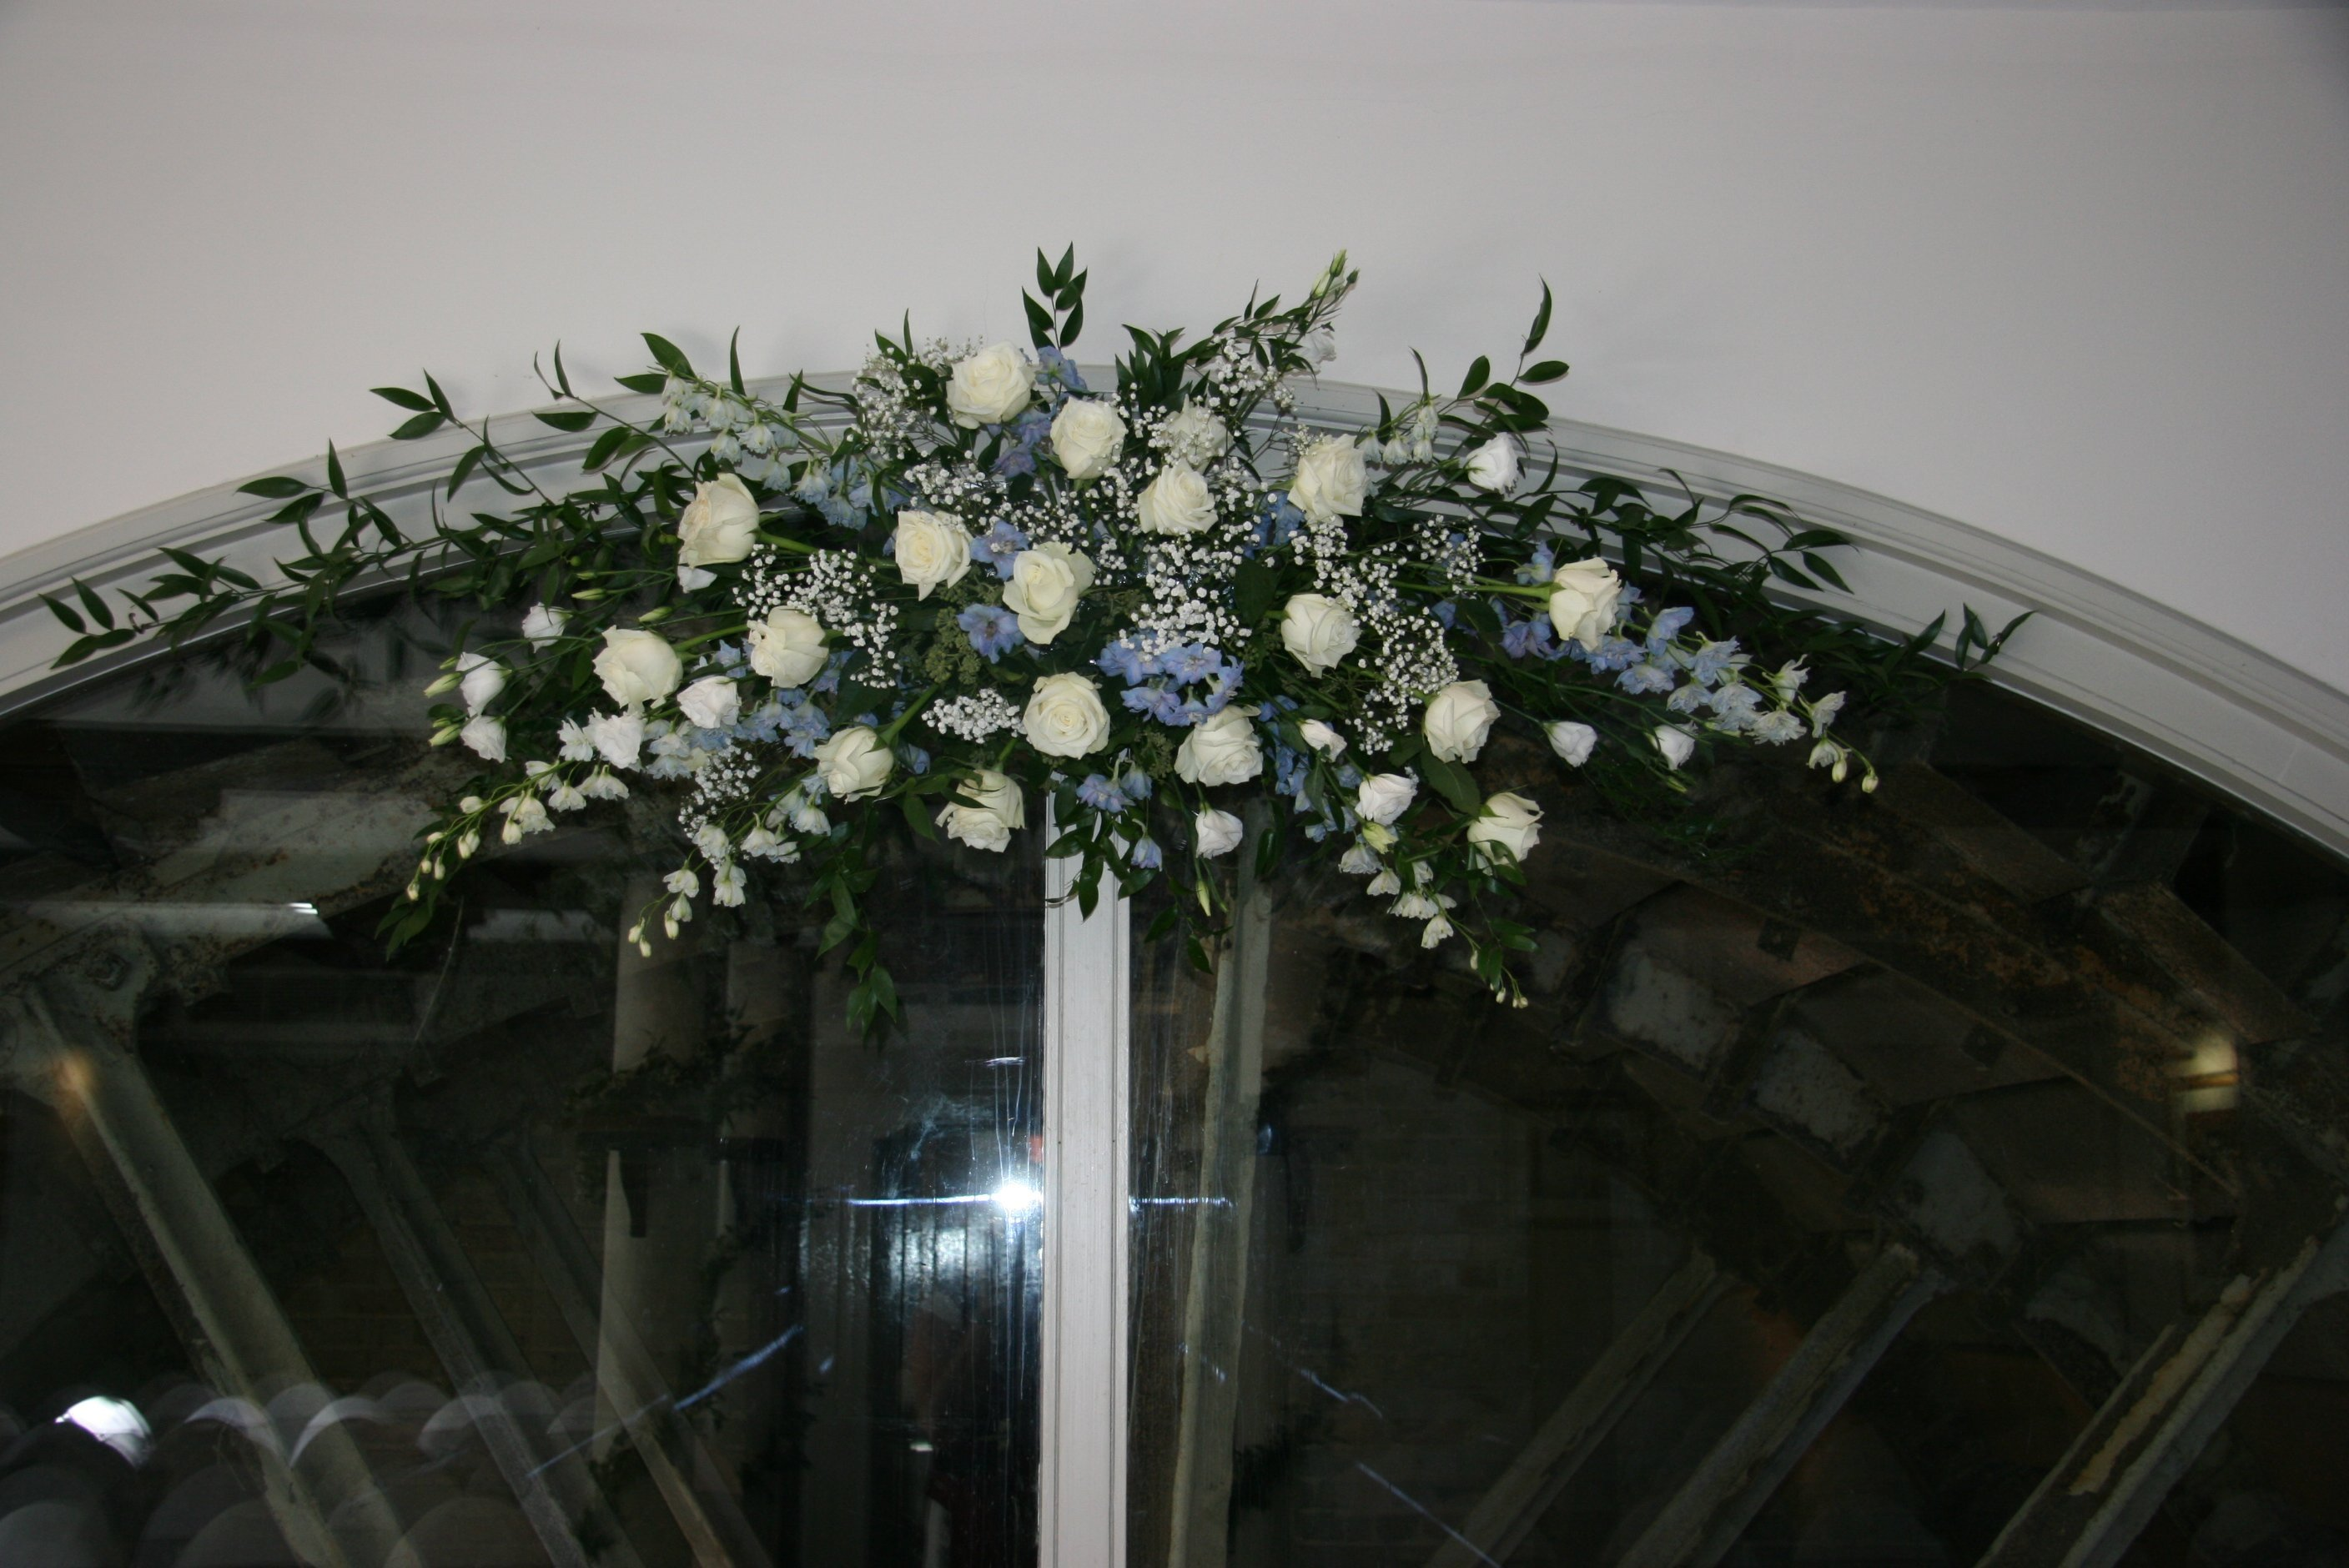 Quy Mill wedding flowers